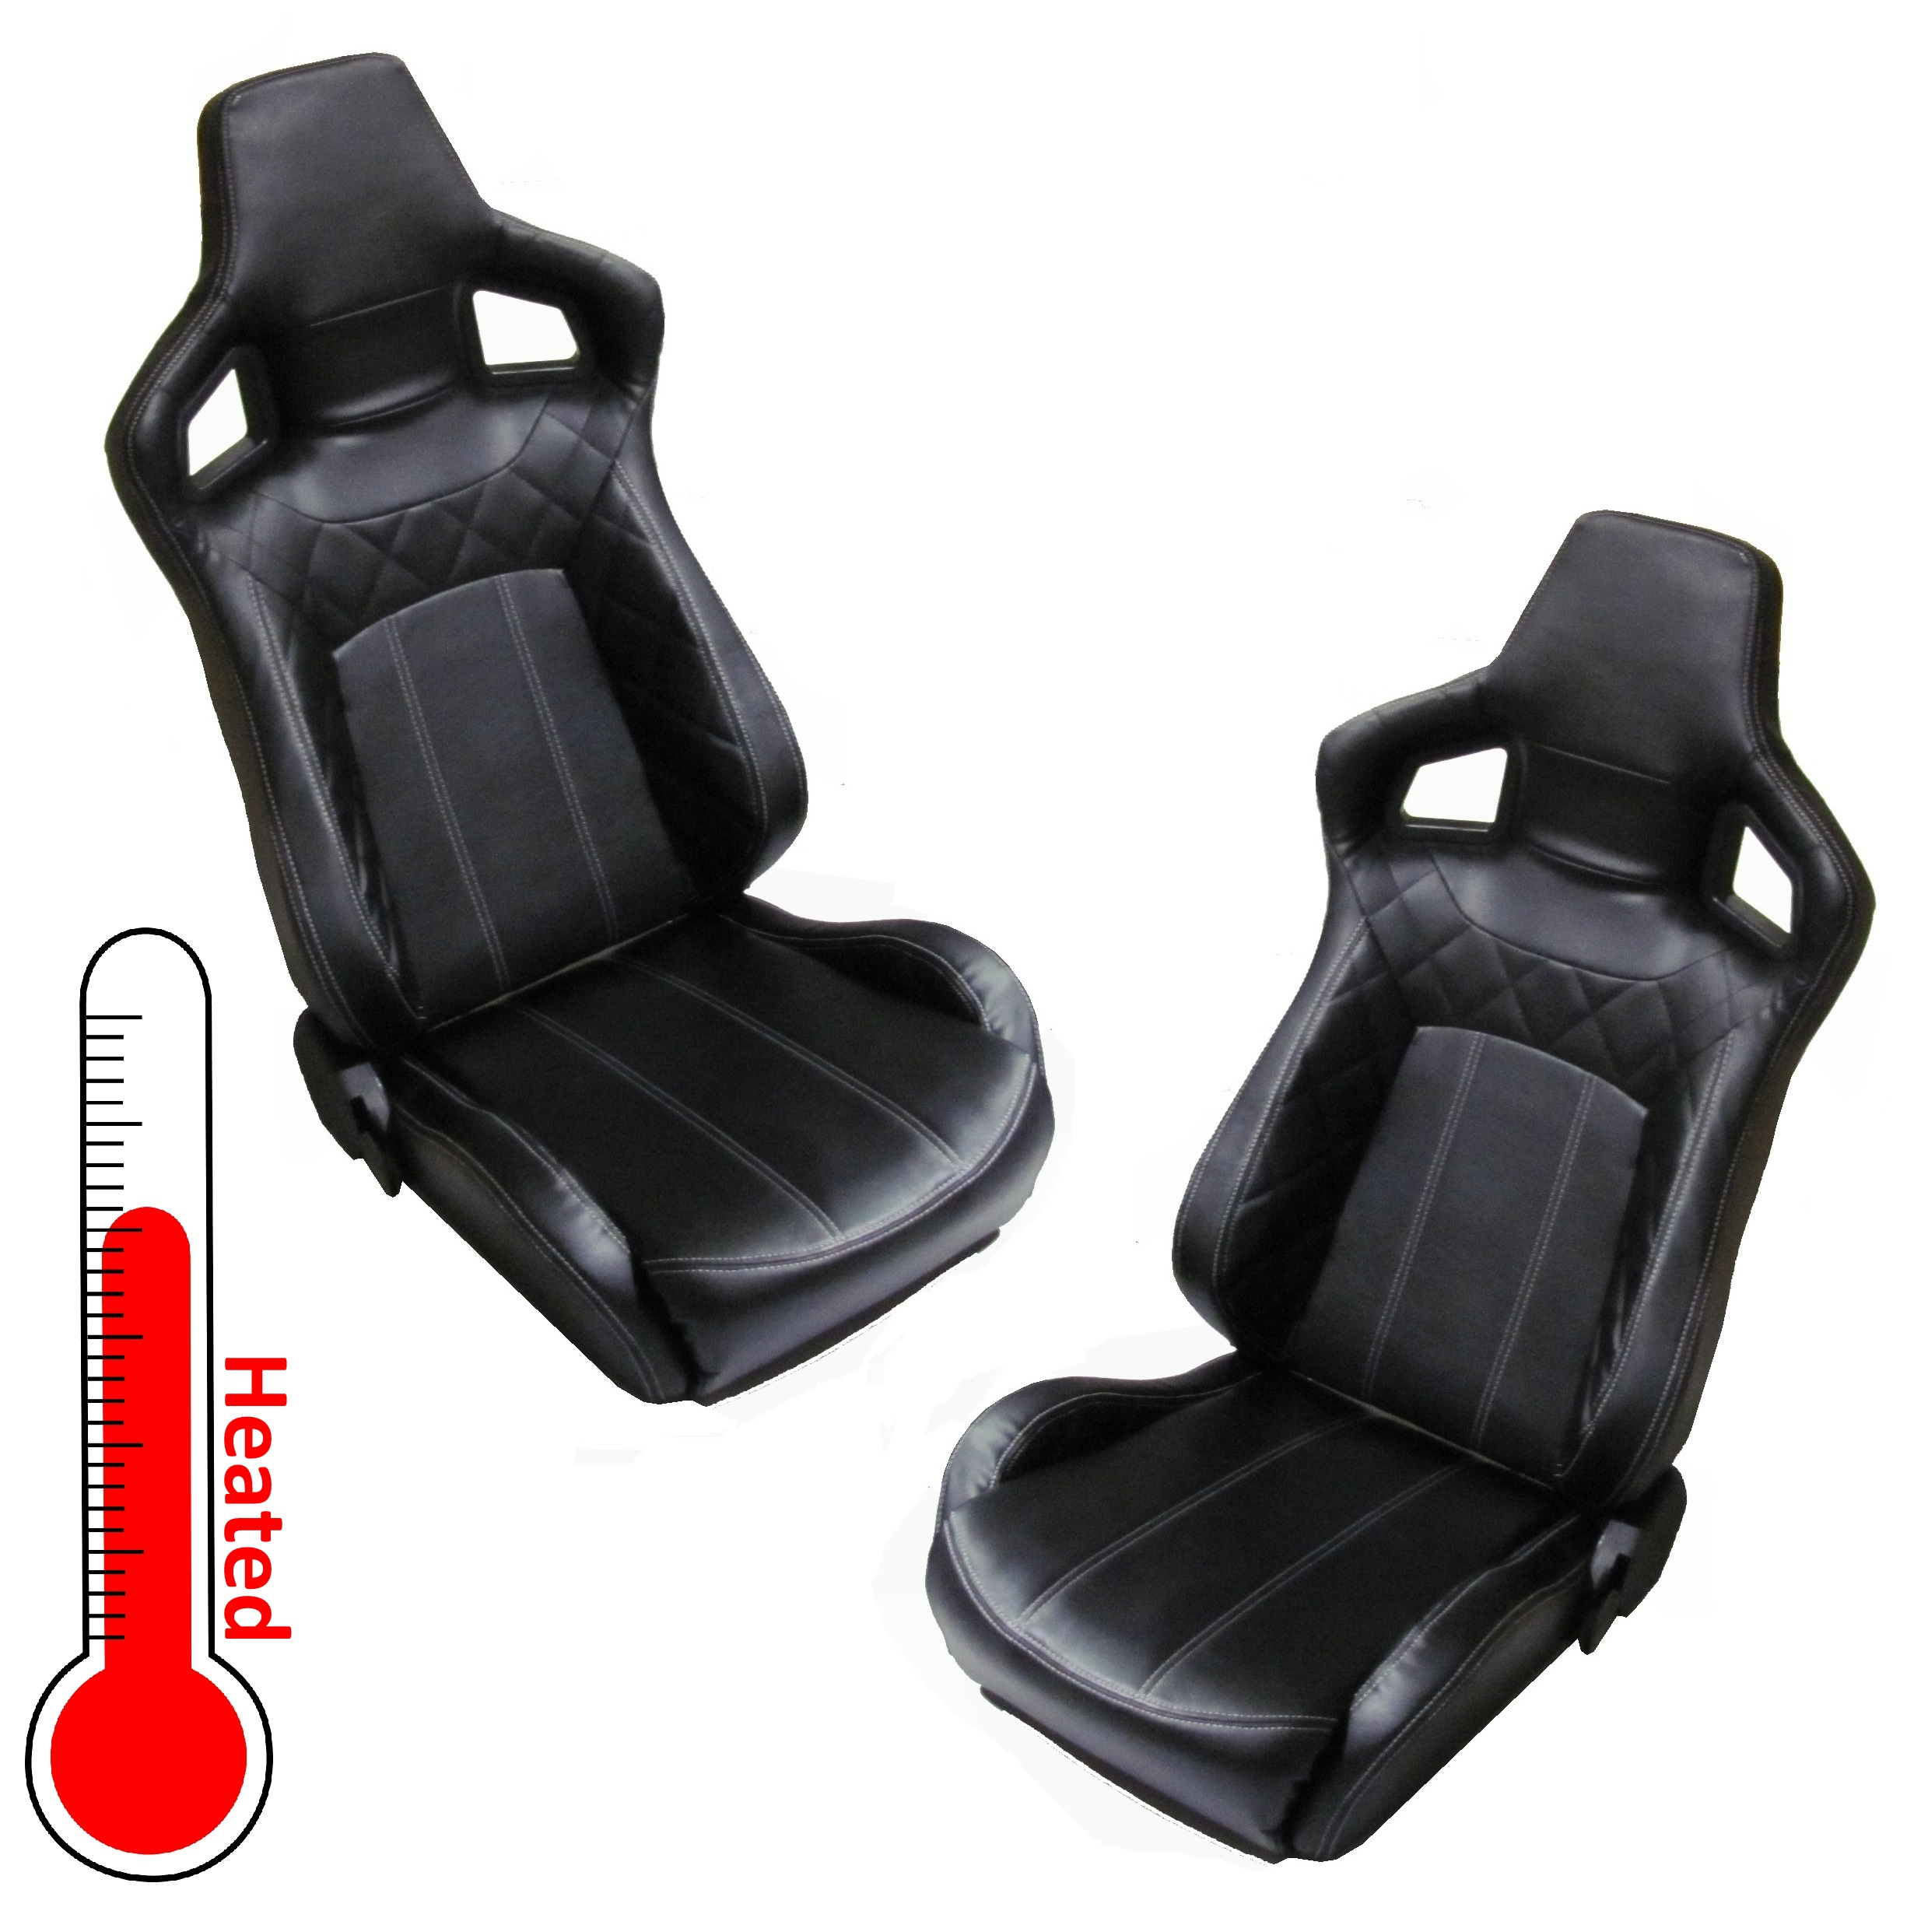 Car Seat Covers For Heated Seats